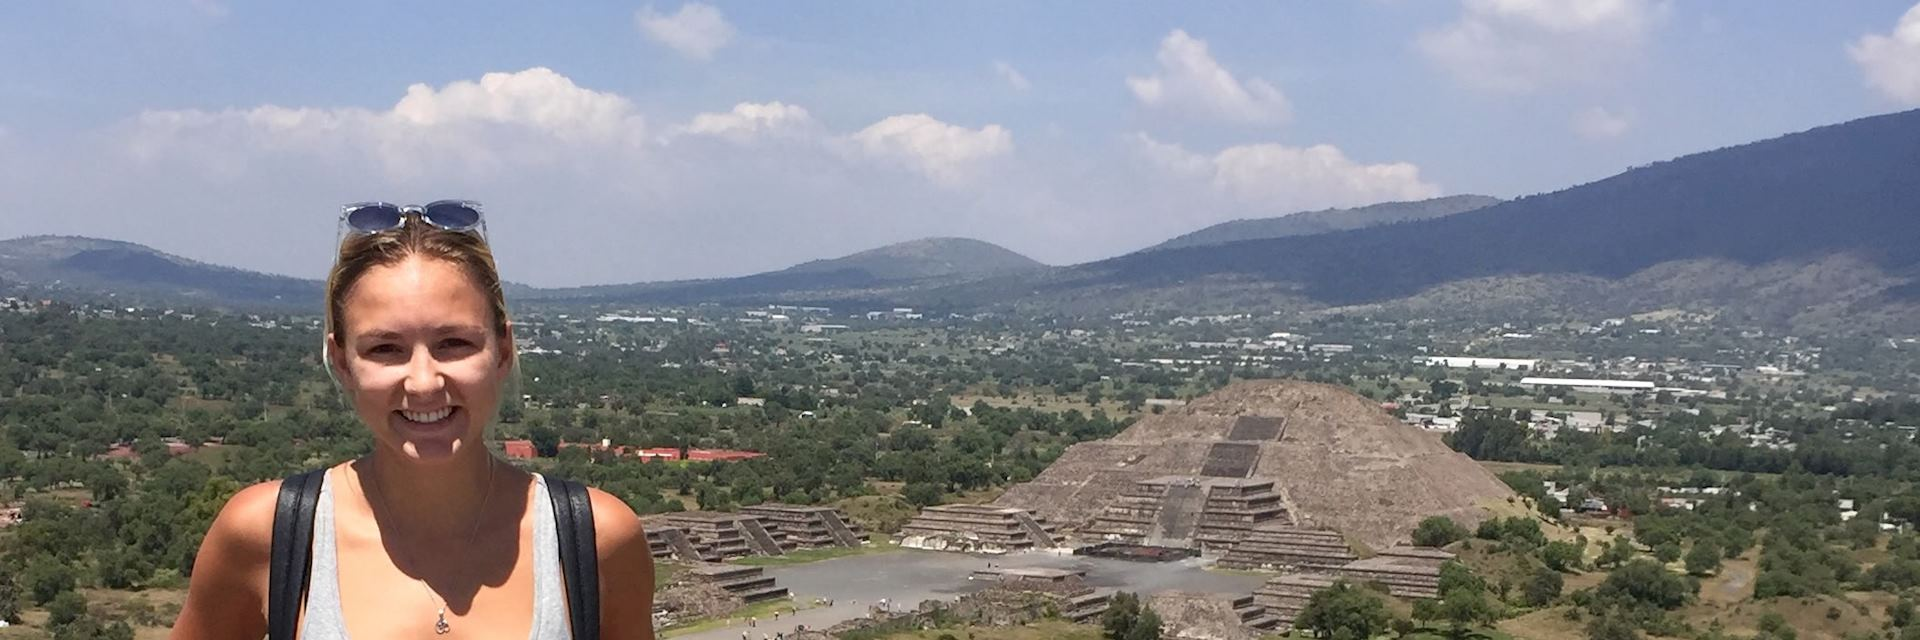 Victoria at Teotihuacan, Mexico City